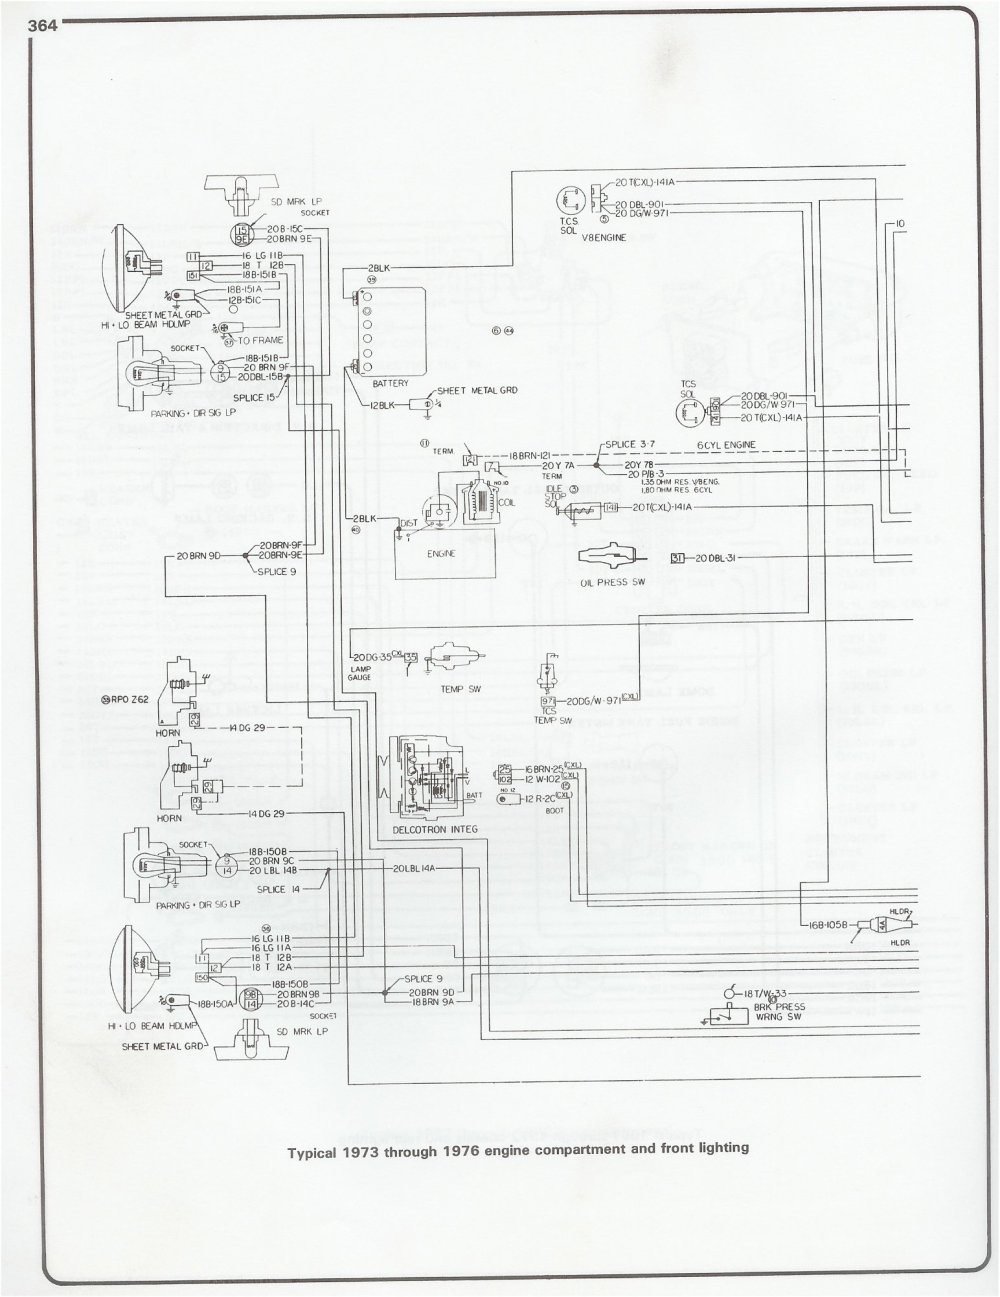 medium resolution of 76 c10 wiring diagram data wiring schema 1977 corvette wiring harness diagram fuse box wiring diagram